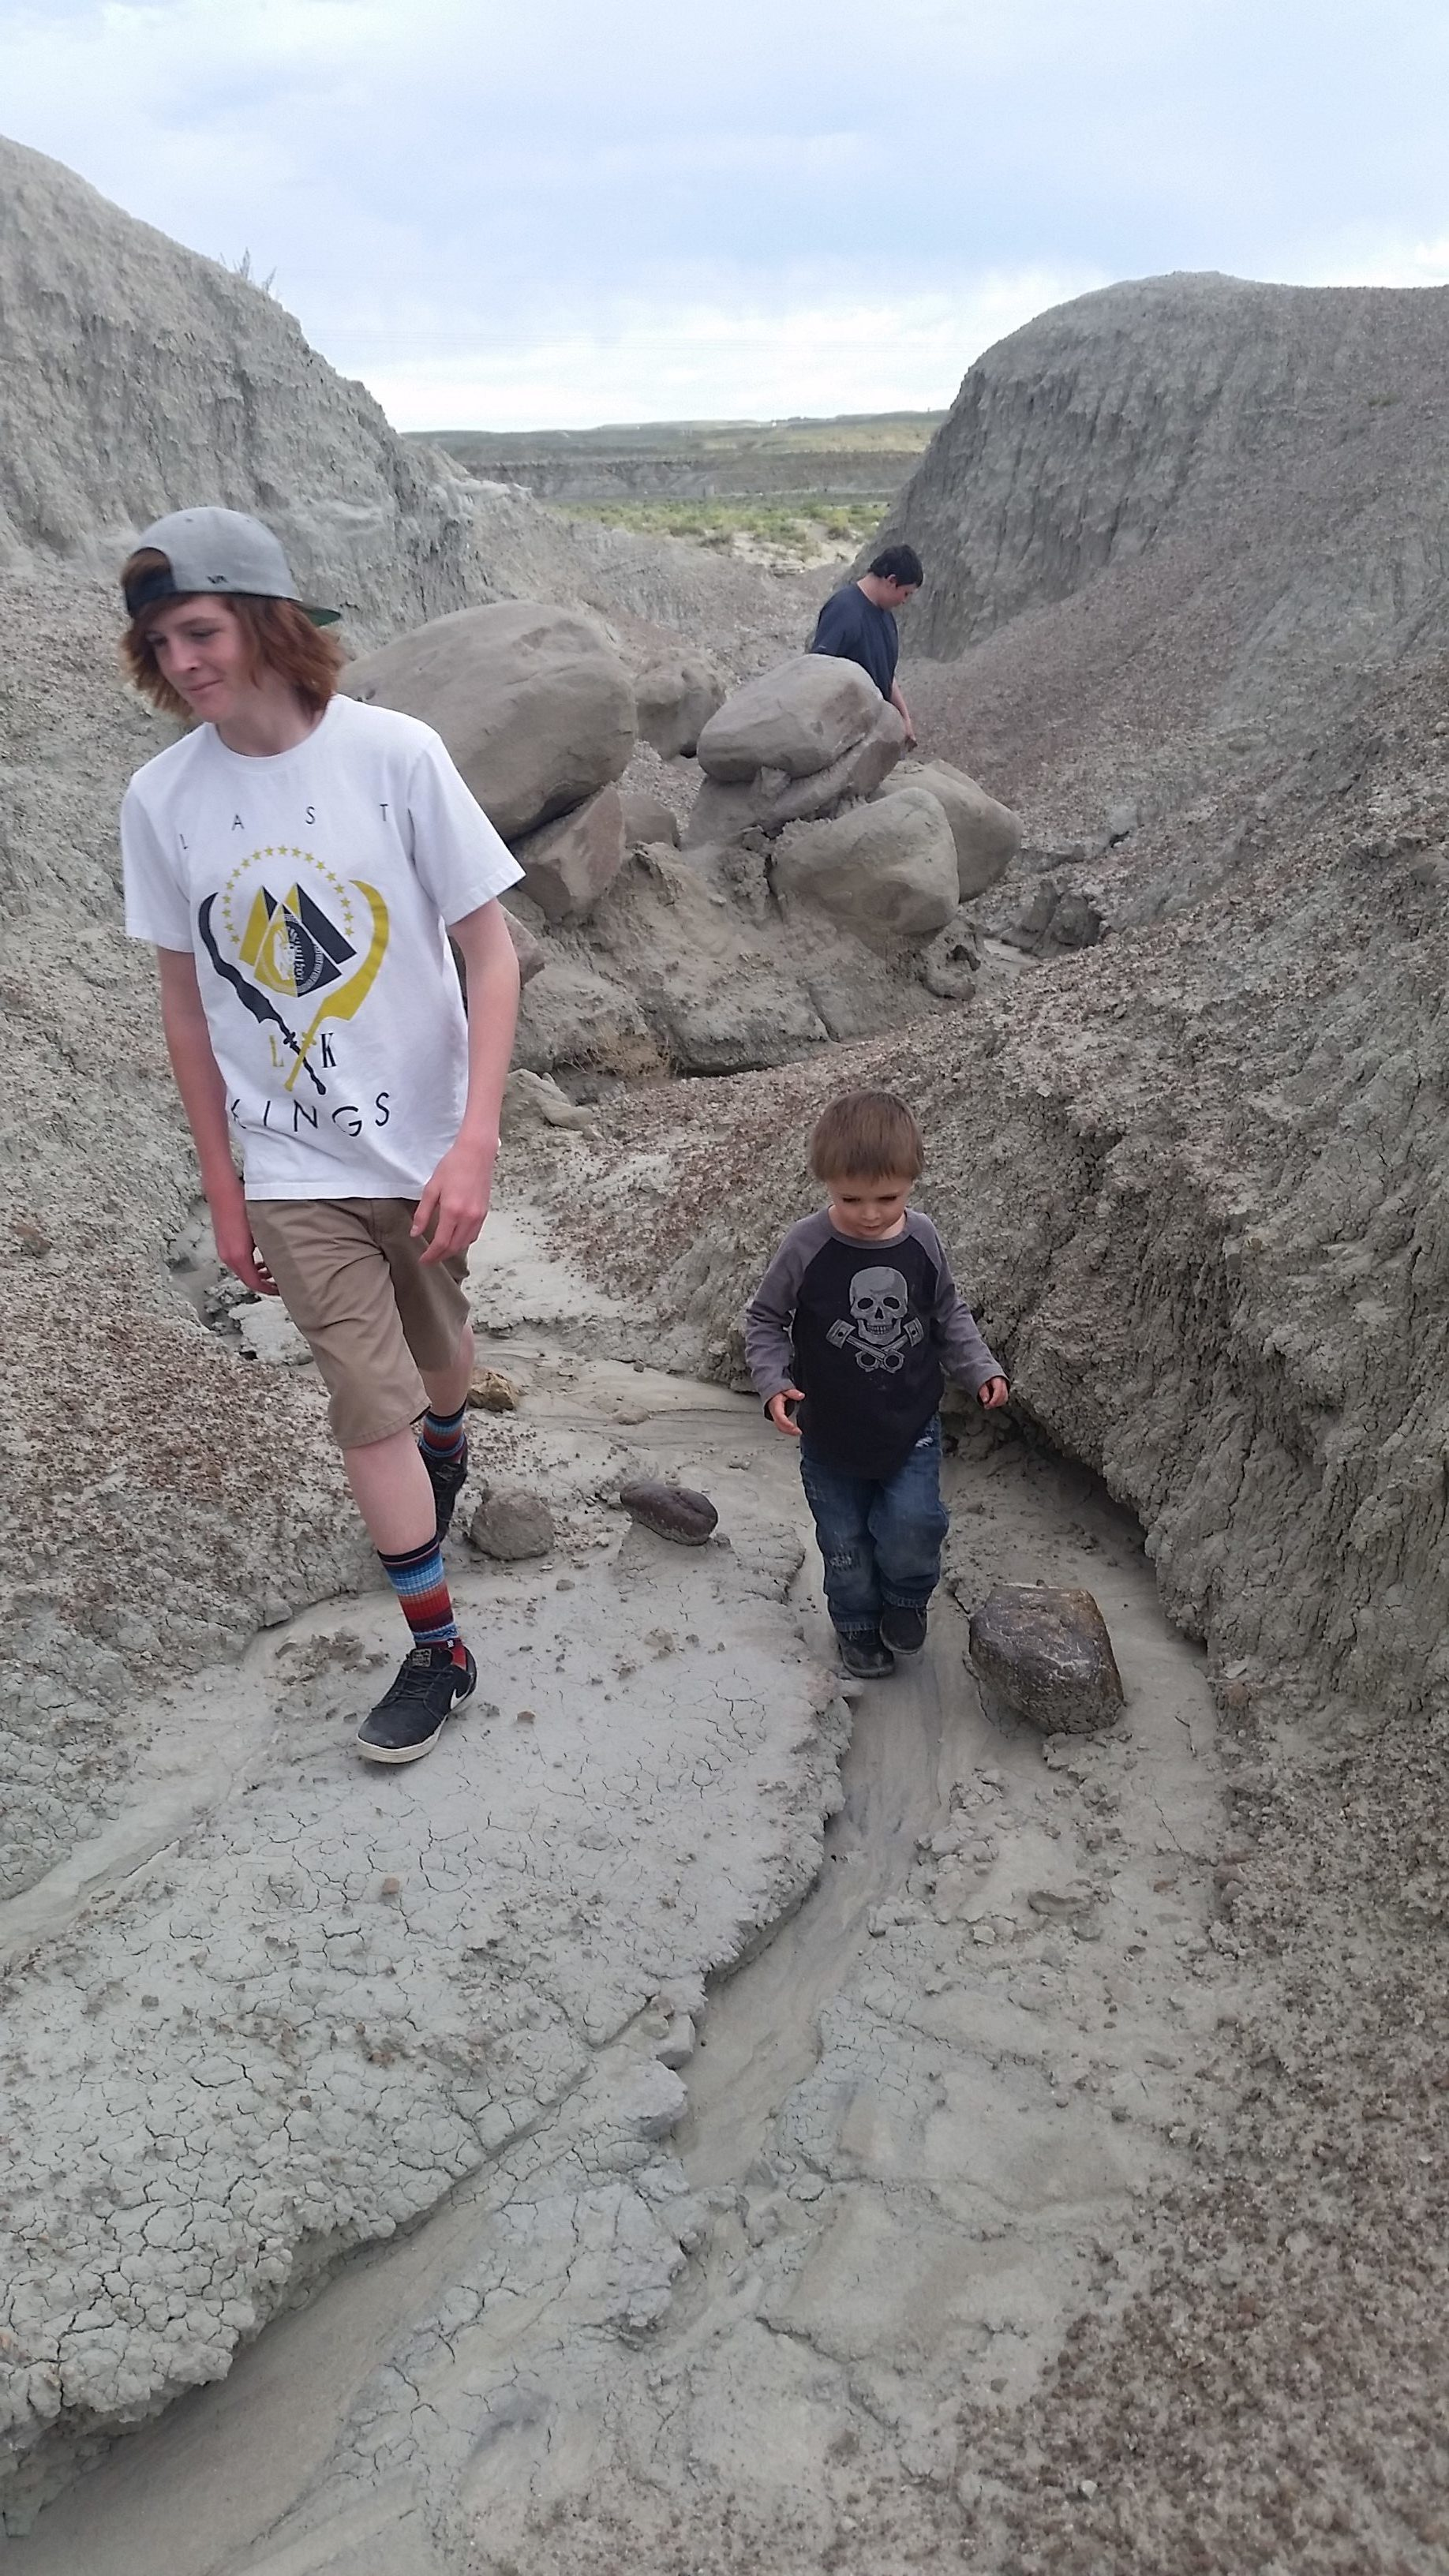 All three of my boys exploring the terrain near Fantasy Canyon.